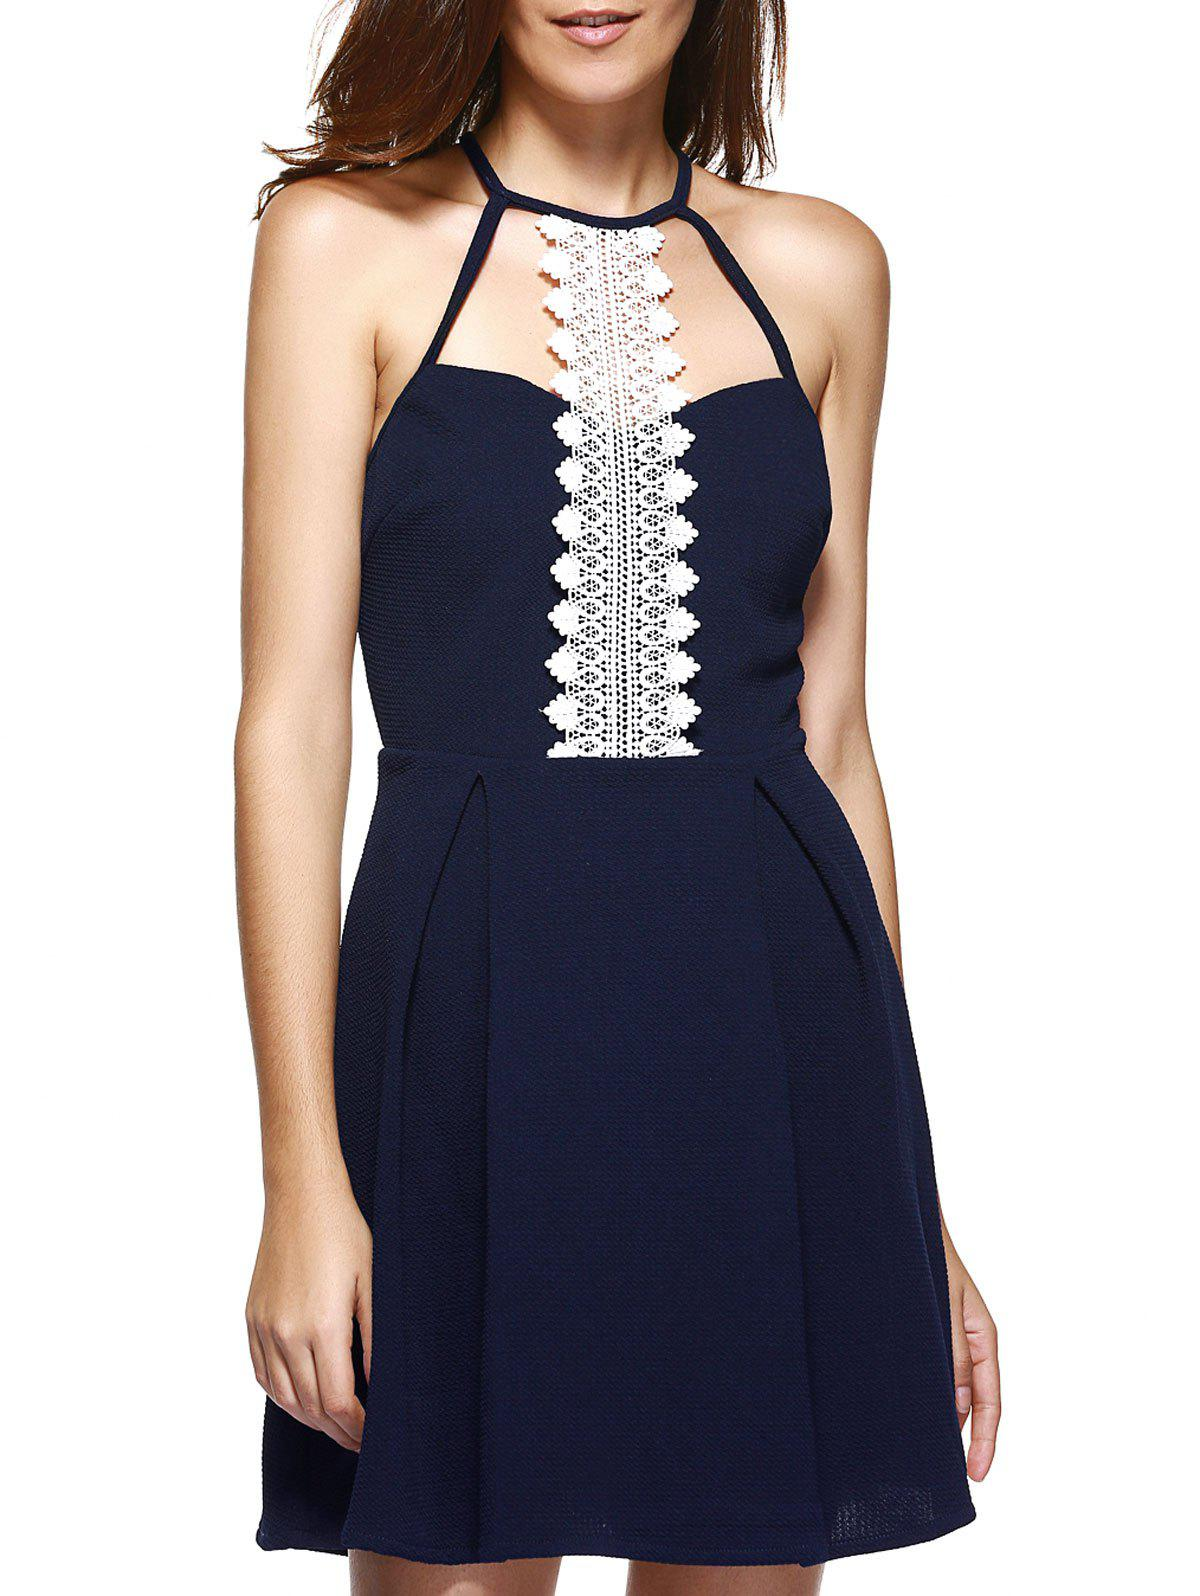 Lace Splicing Cut Out Back Zippered Dress